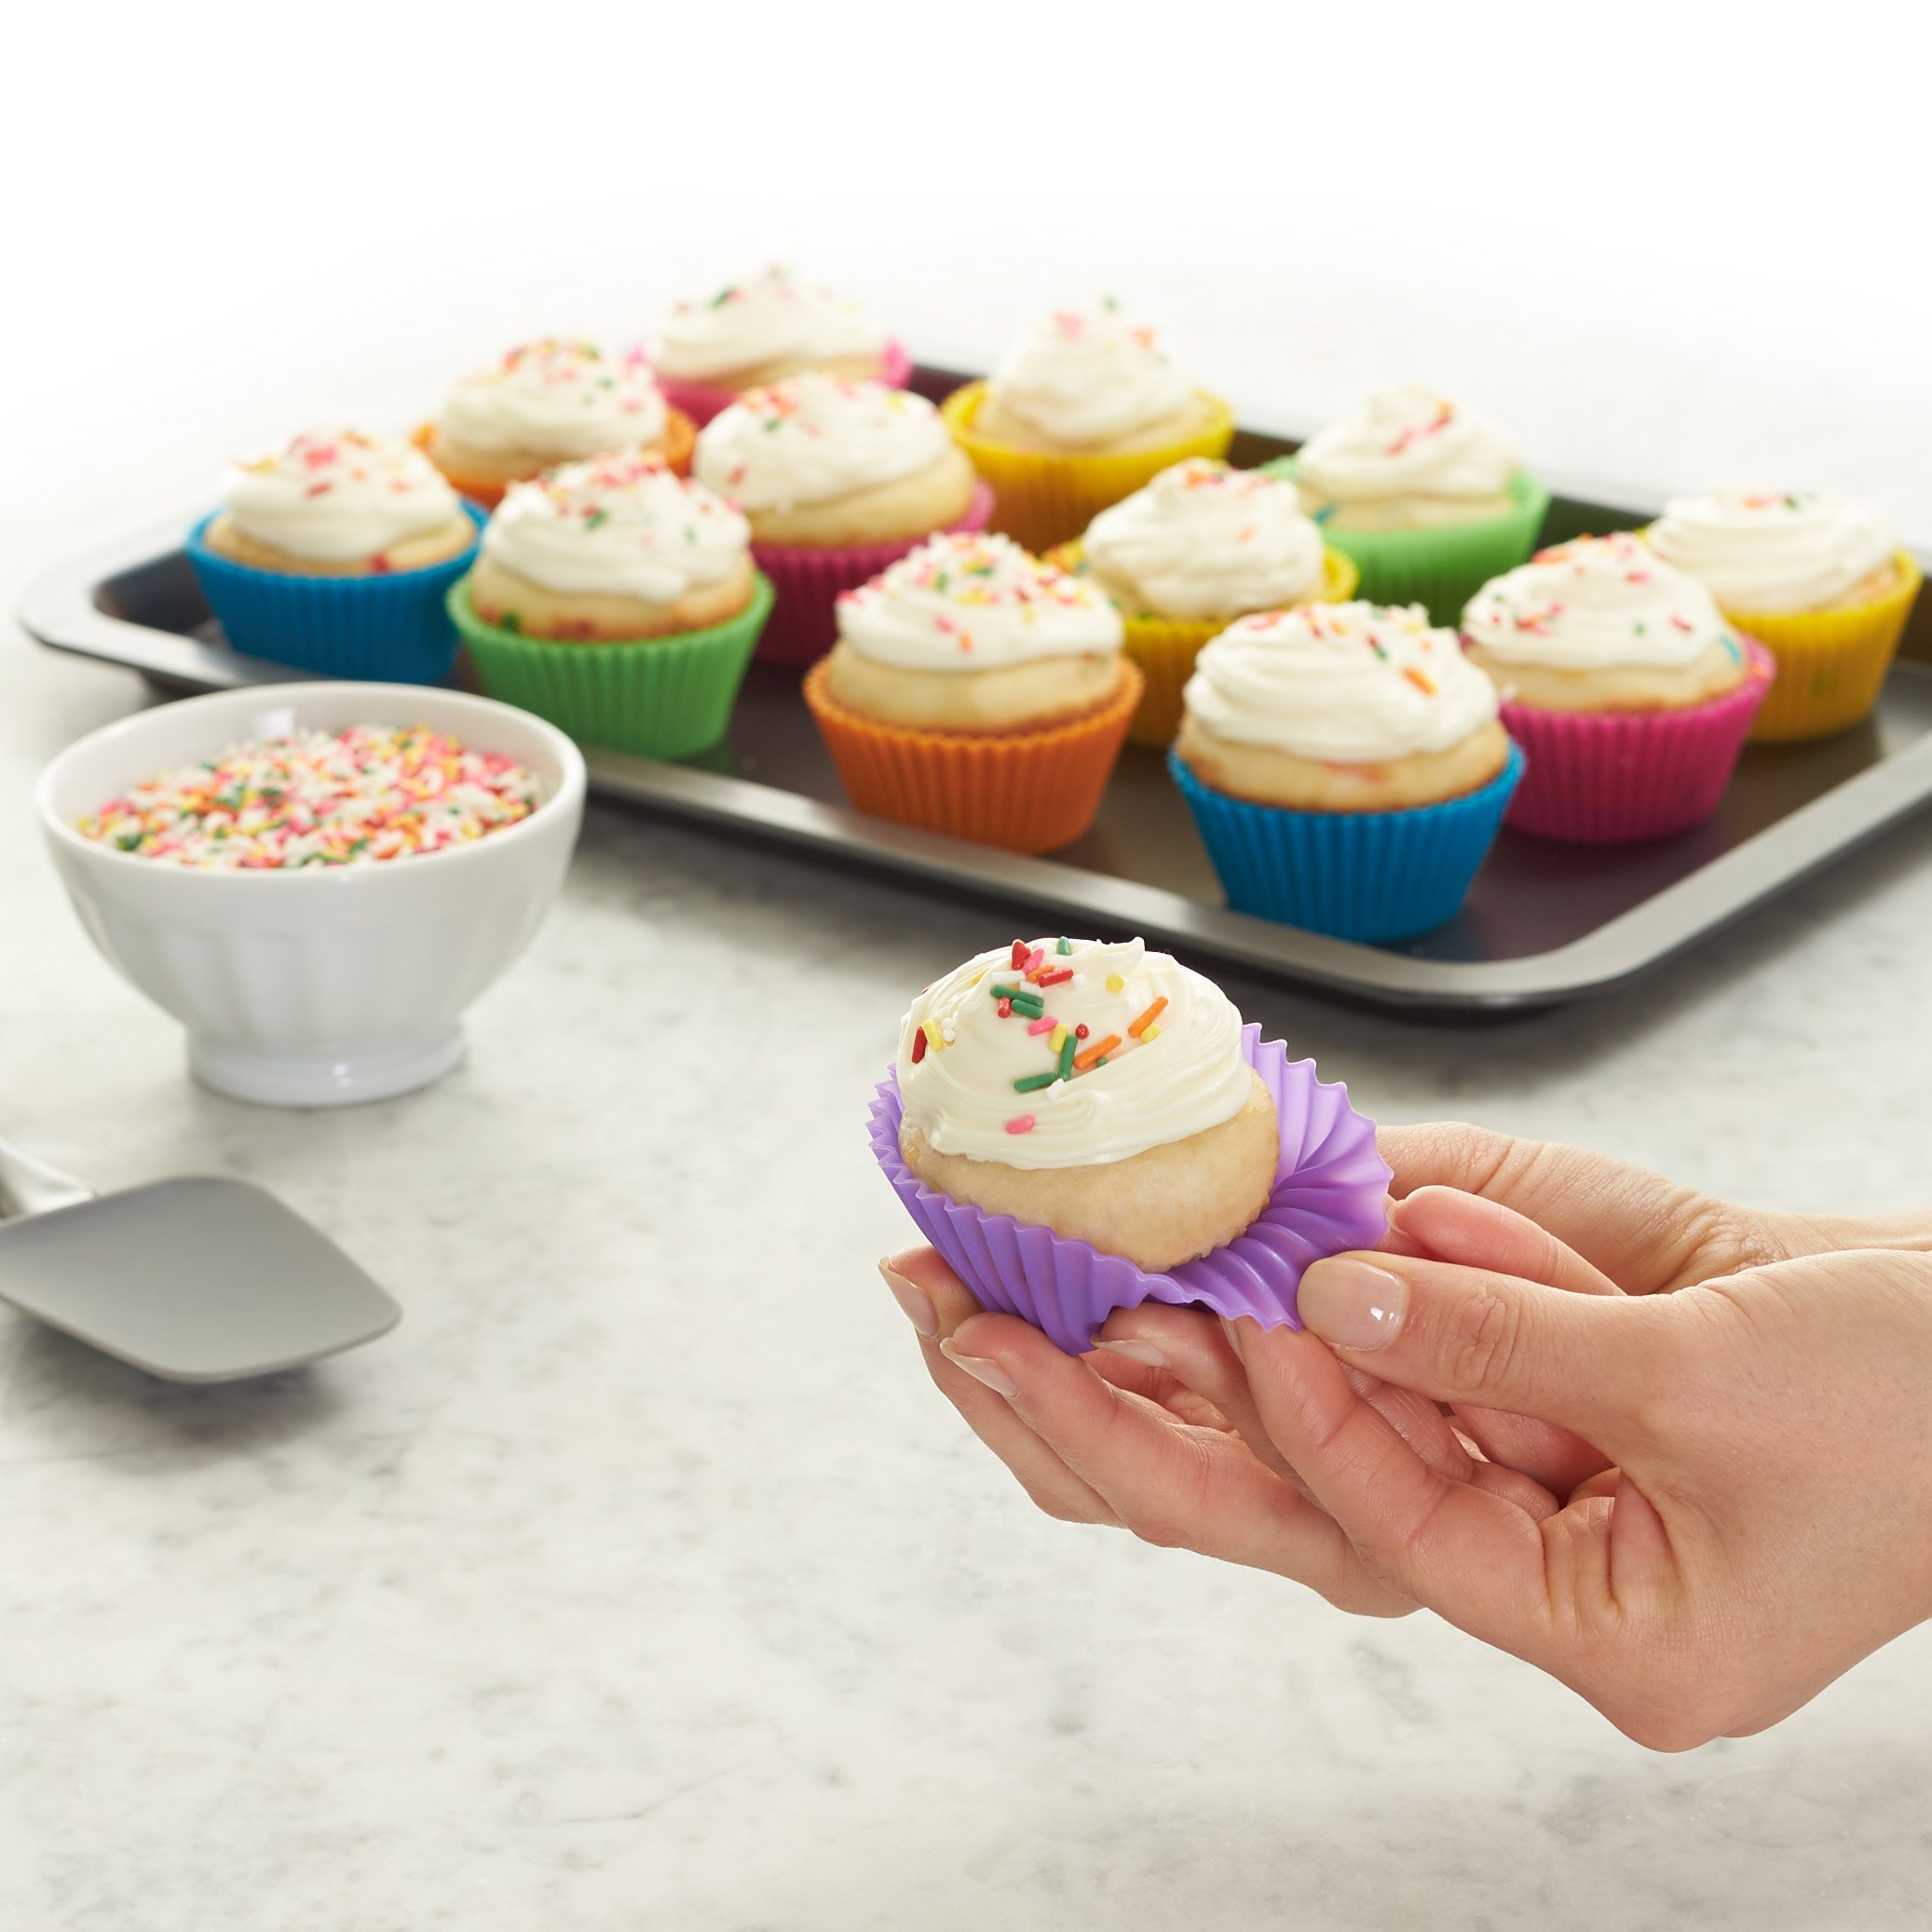 Amazon Basics Reusable Silicone Baking Cups, Muffin Liners - Pack of 12, Multicolor